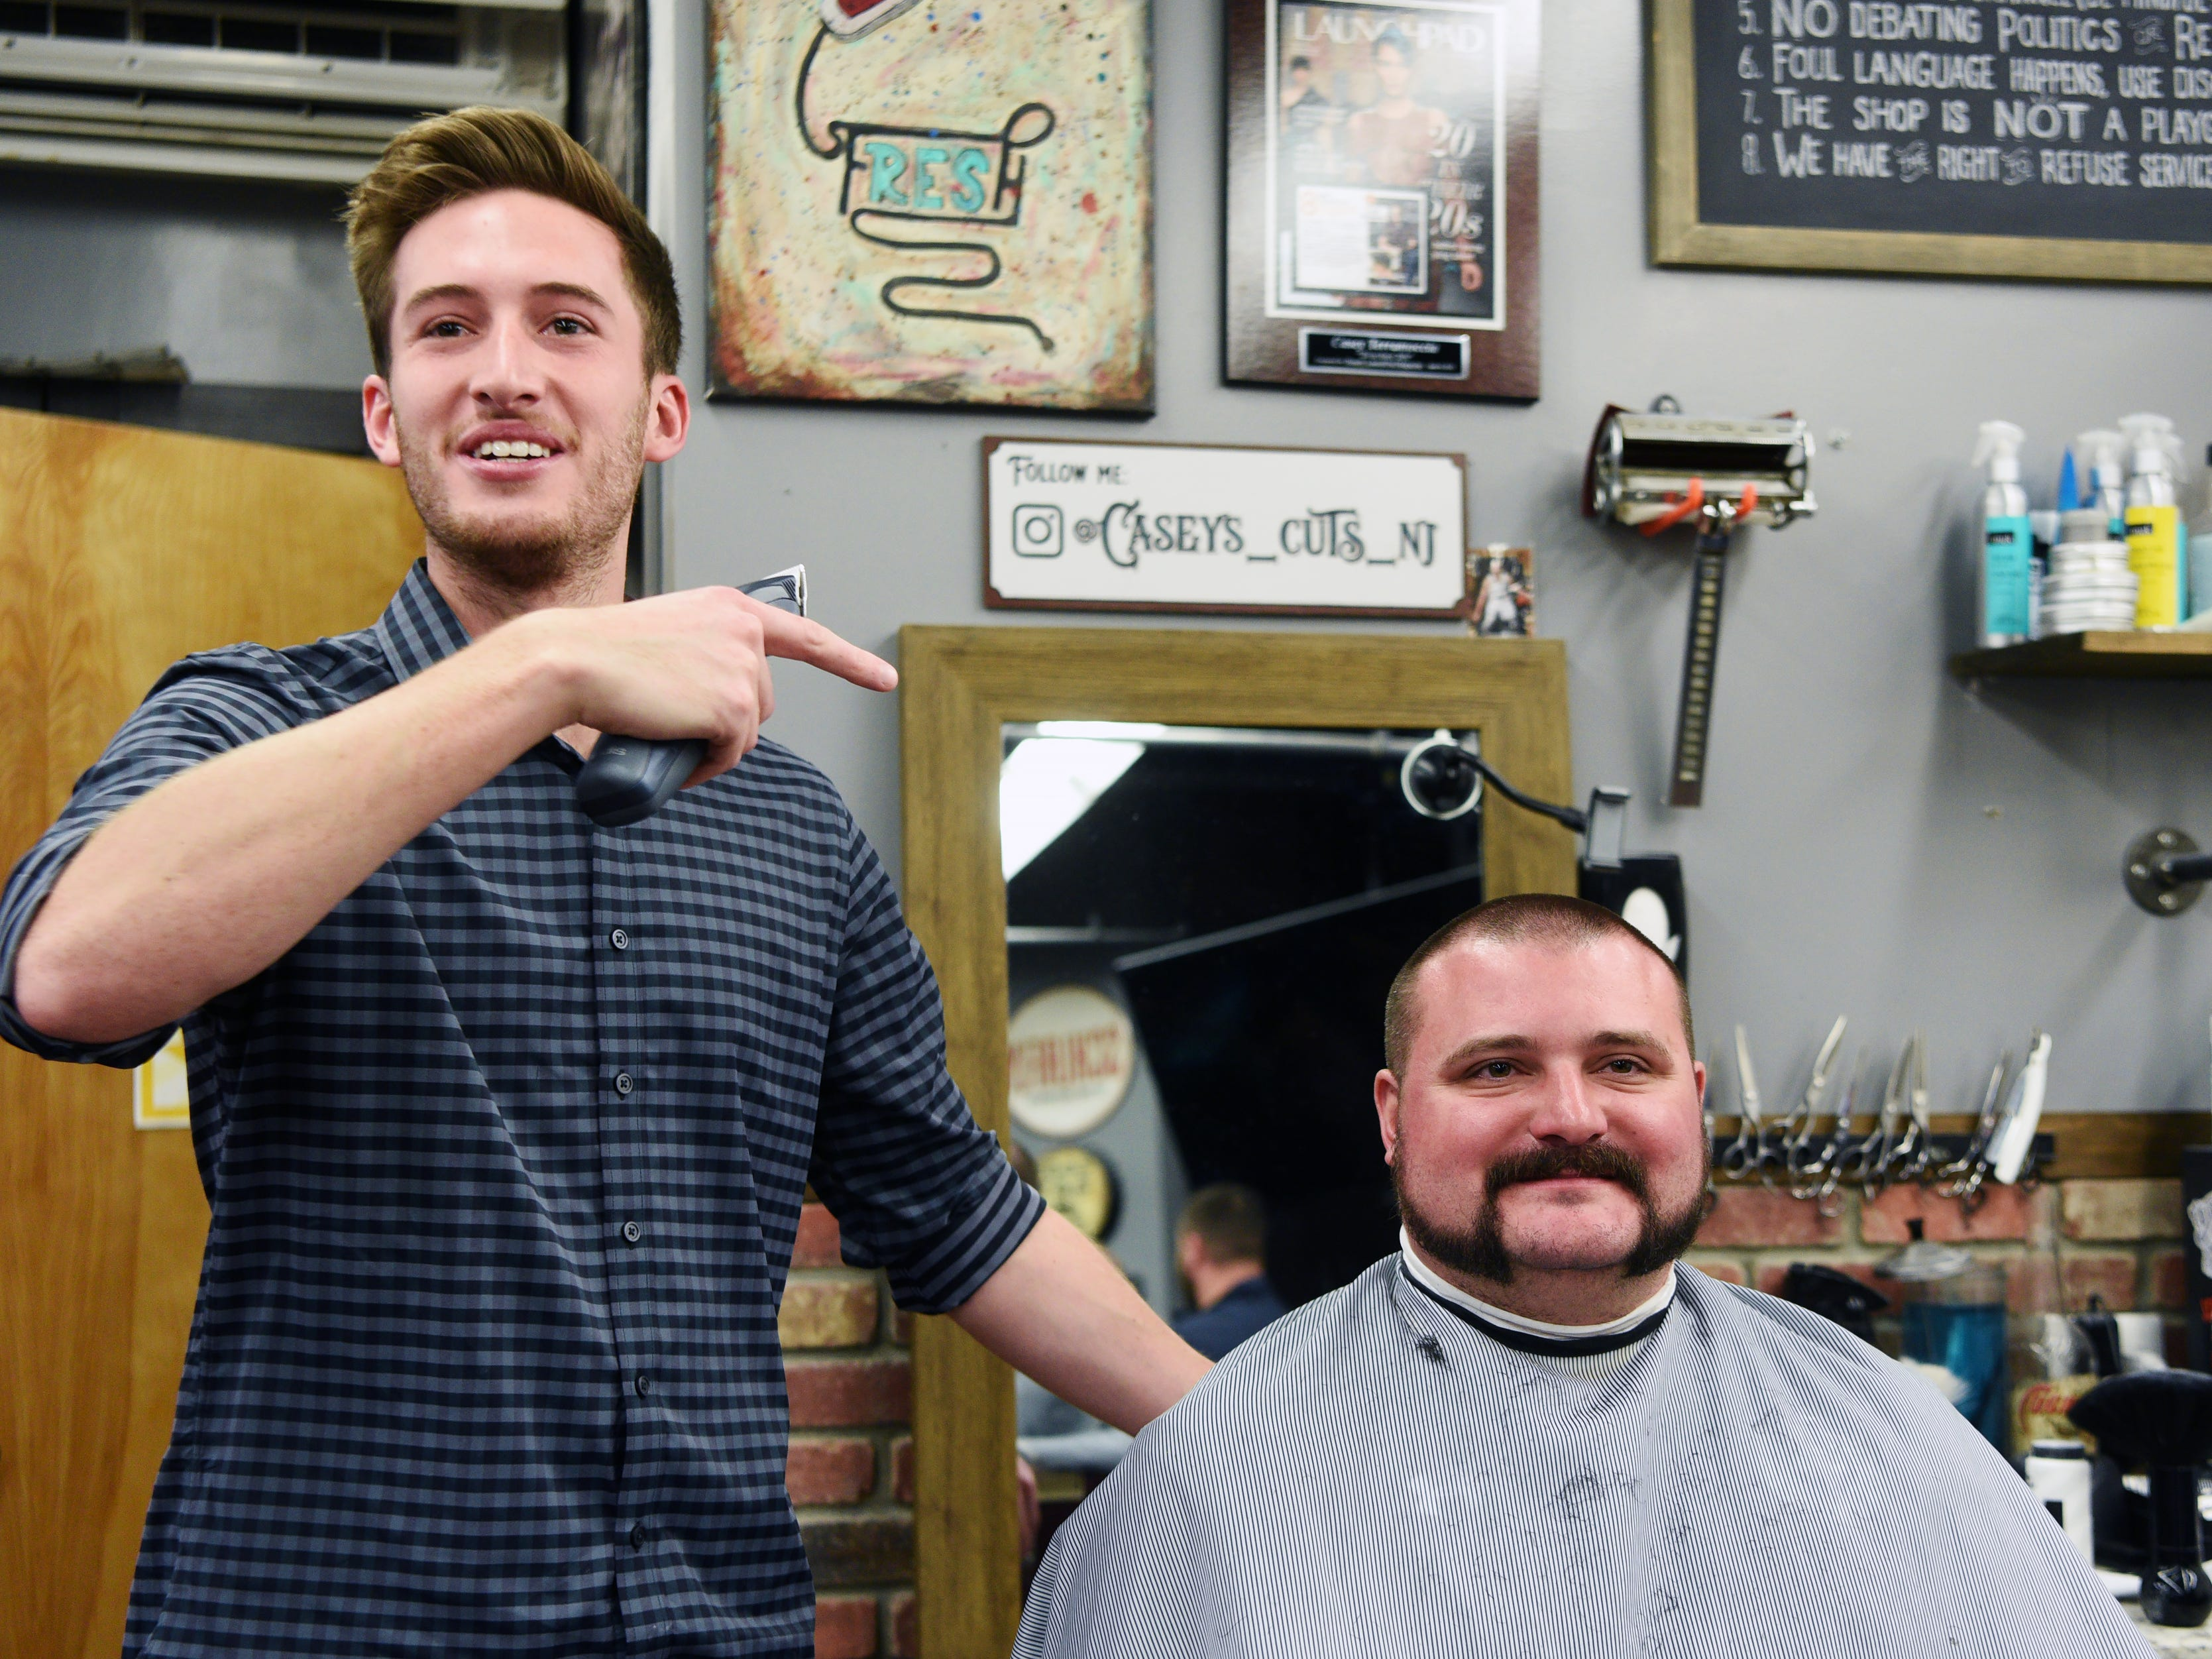 Casey Terramoccia, owner of Iconic Barber Shop, jokingly shaved off a portion of Patrolman Sean Amoruso's beard during the Shave-Off. The Ridgewood, Wyckoff and Franklin Lakes PBAs held their No-Shave November Annual Shave-Off at Iconic Barber Shop in Glen Rock on Sunday, December 2, 2018. The money raised will help a Ridgewood family pay medical bills. Iconic Barber Shop also donated 100% percent of the proceeds from Sunday morning's Shave-Off.